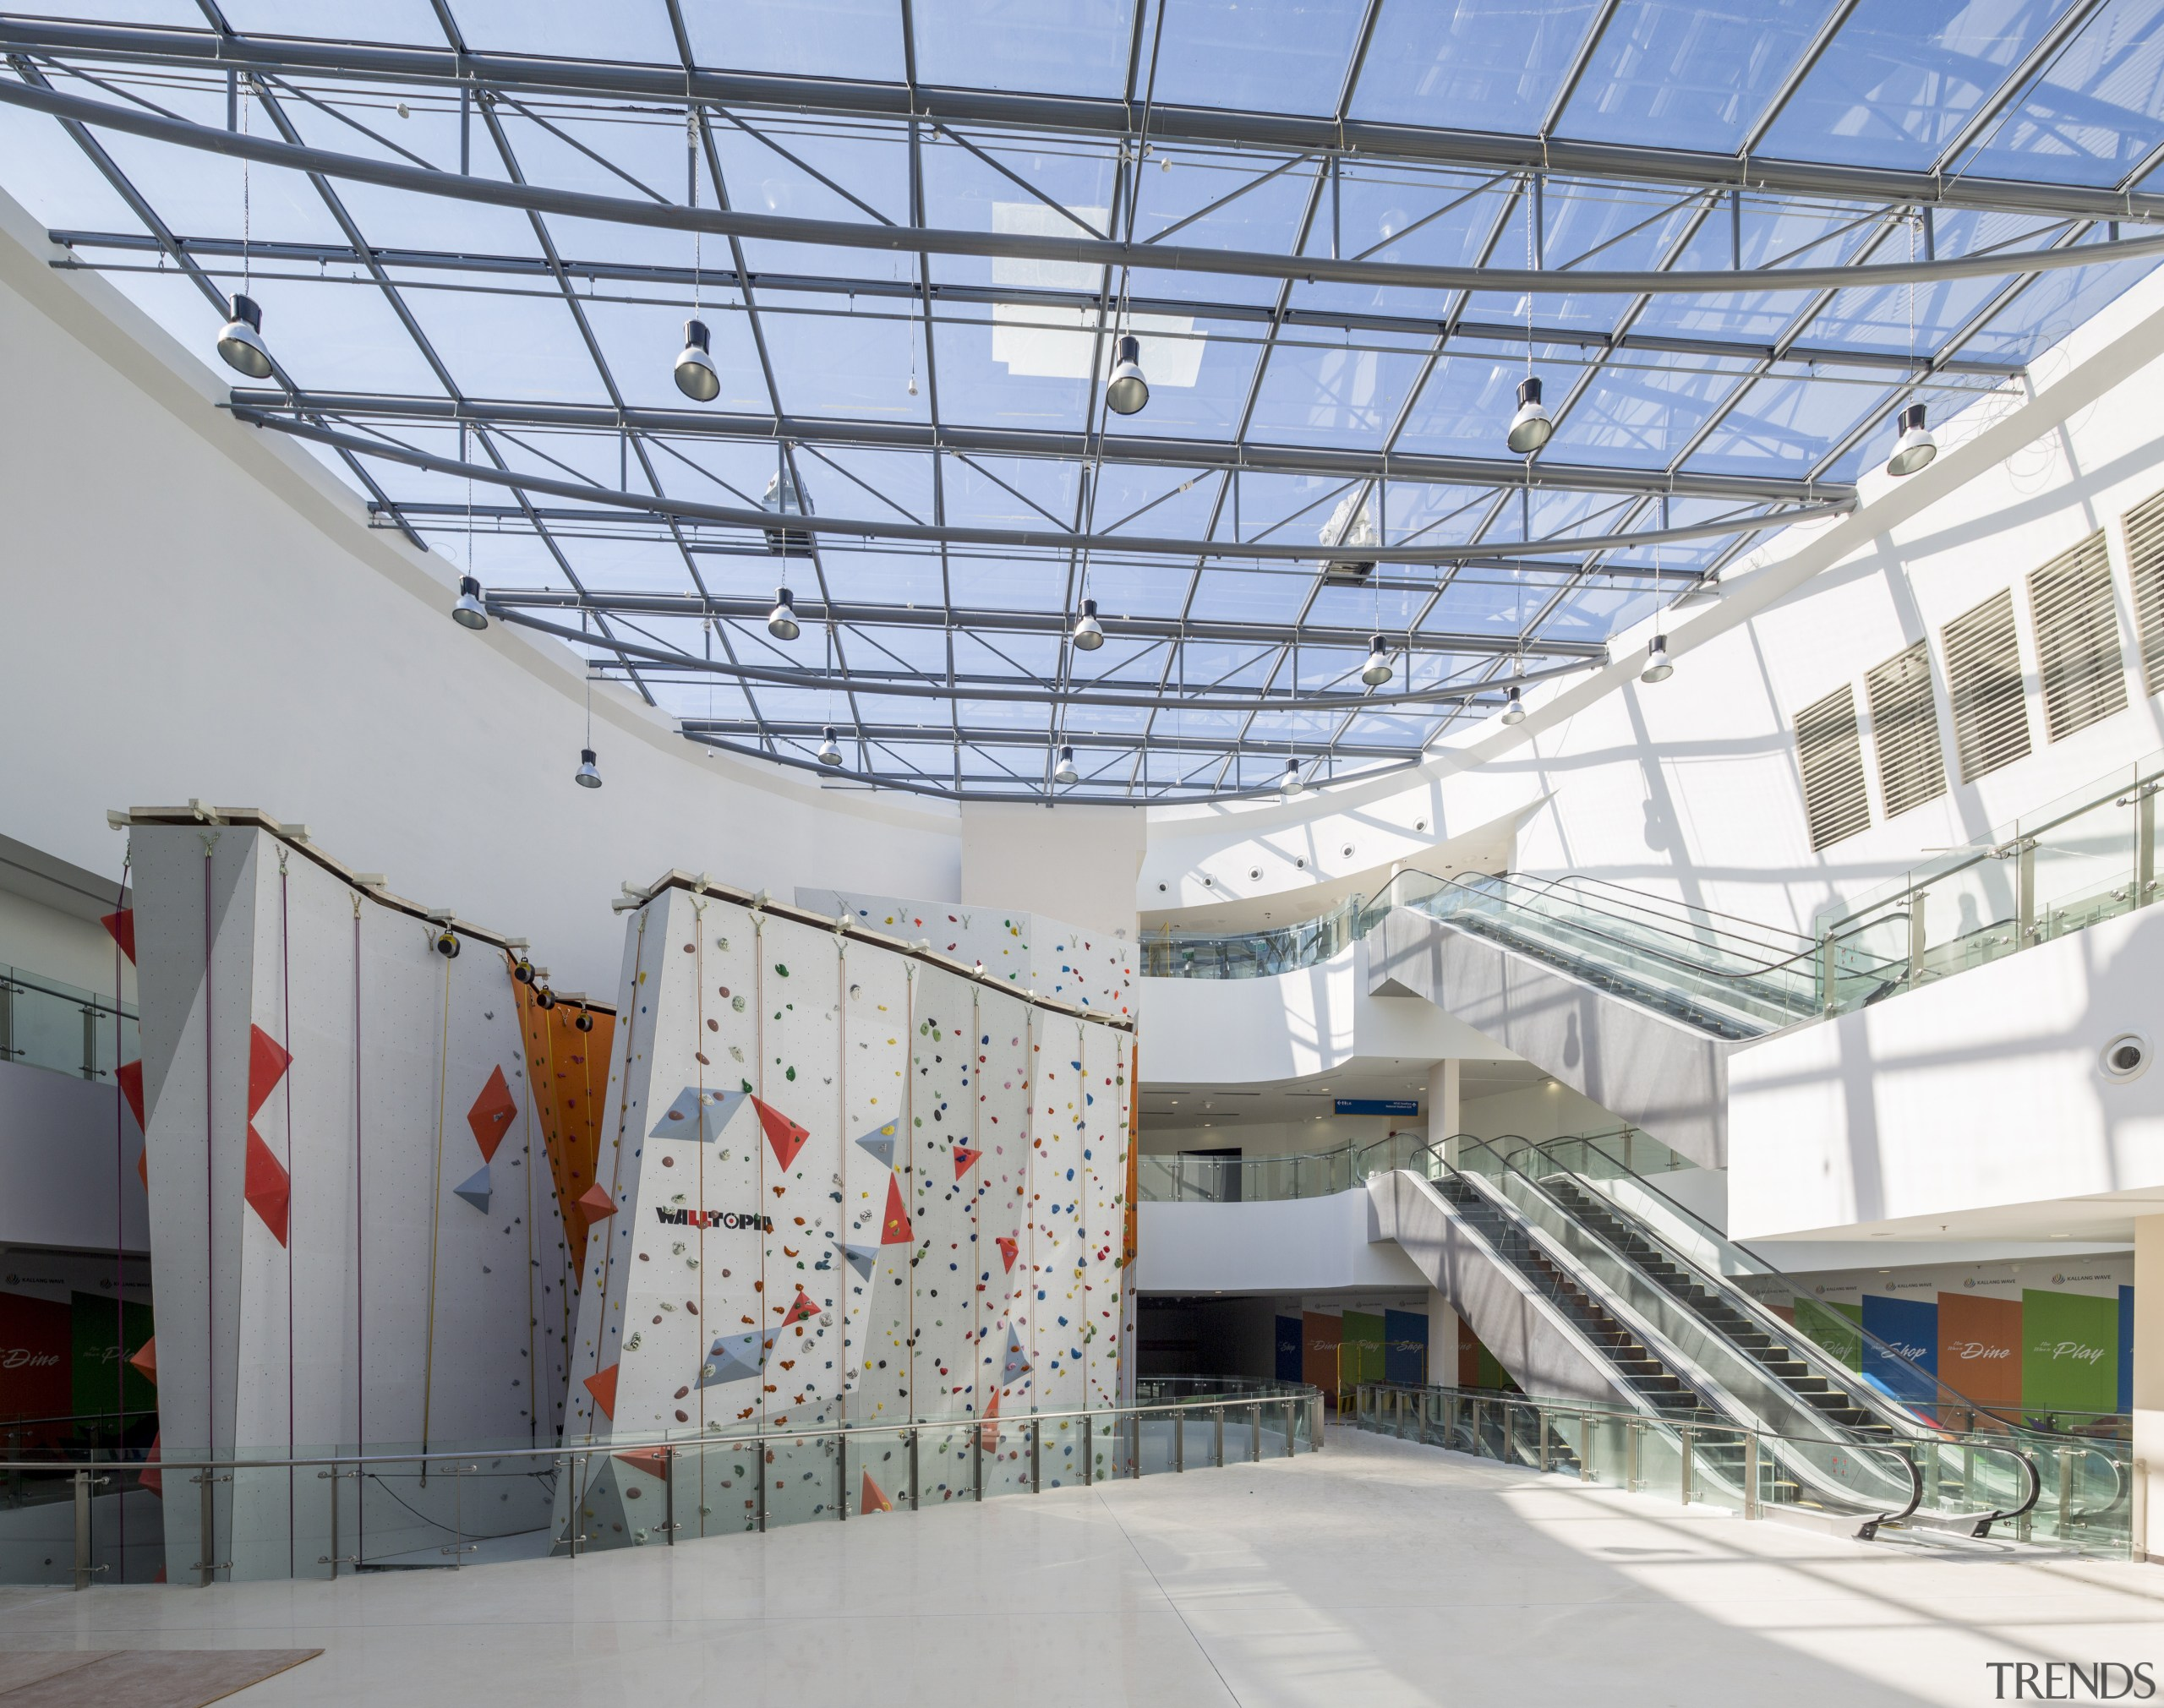 The retail mall at the Singapore Sports Hub architecture, building, ceiling, daylighting, roof, structure, tourist attraction, gray